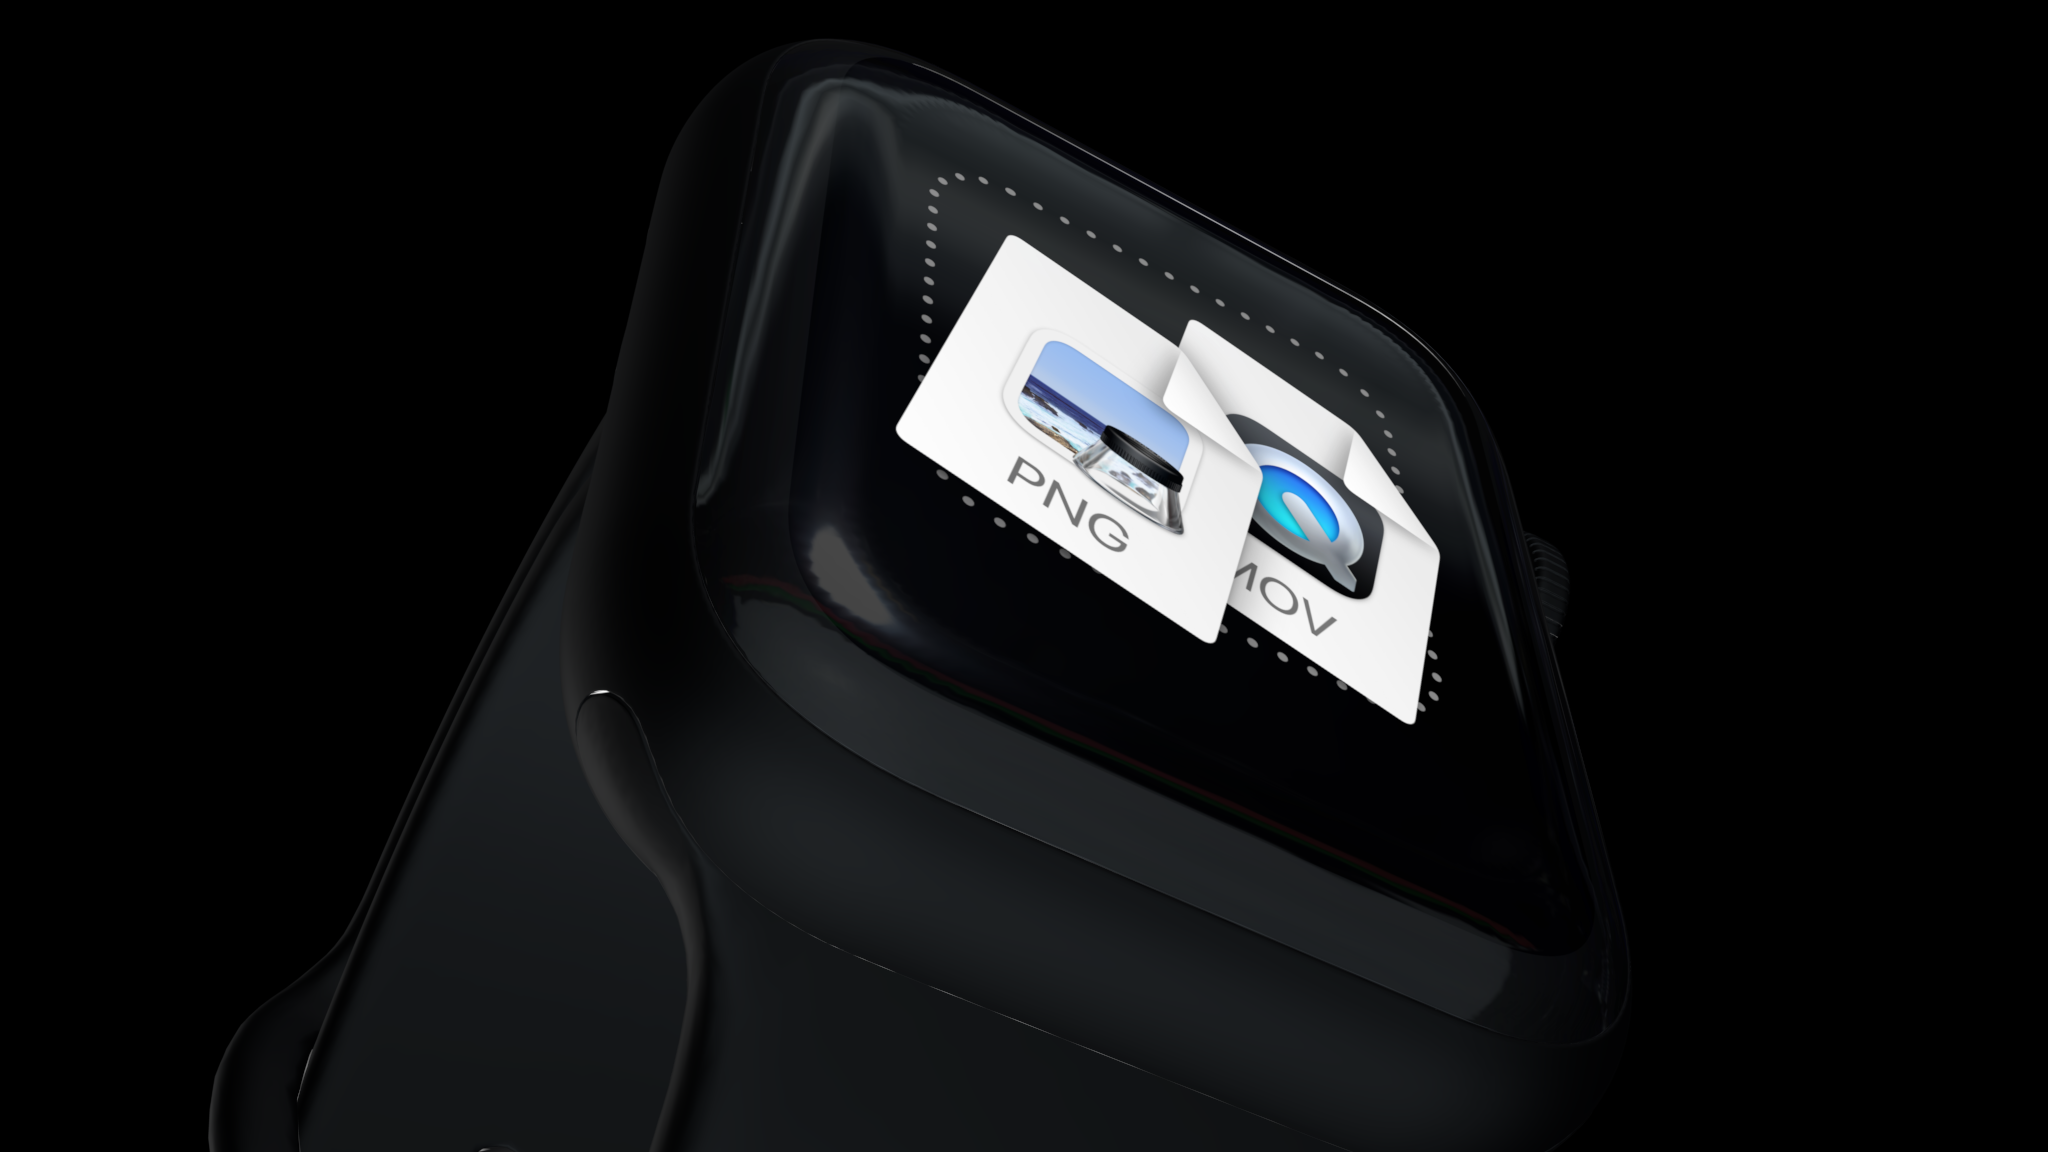 Apple watch mockup seen from below